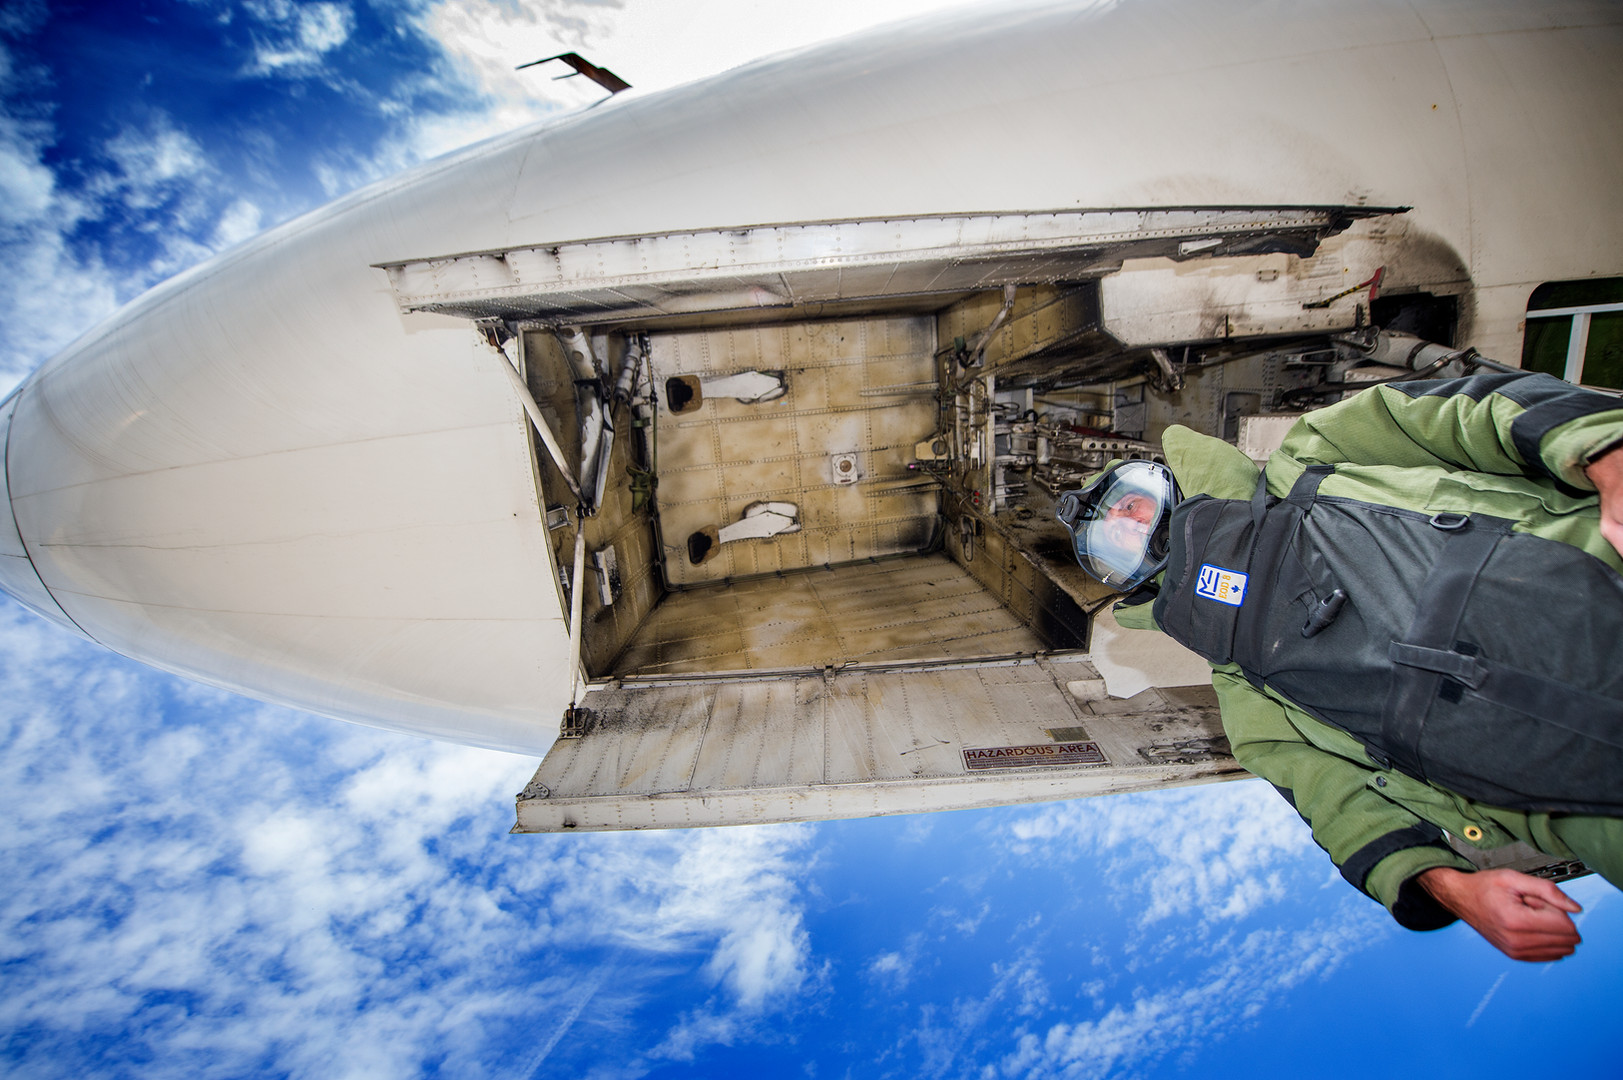 A training course for aircraft security